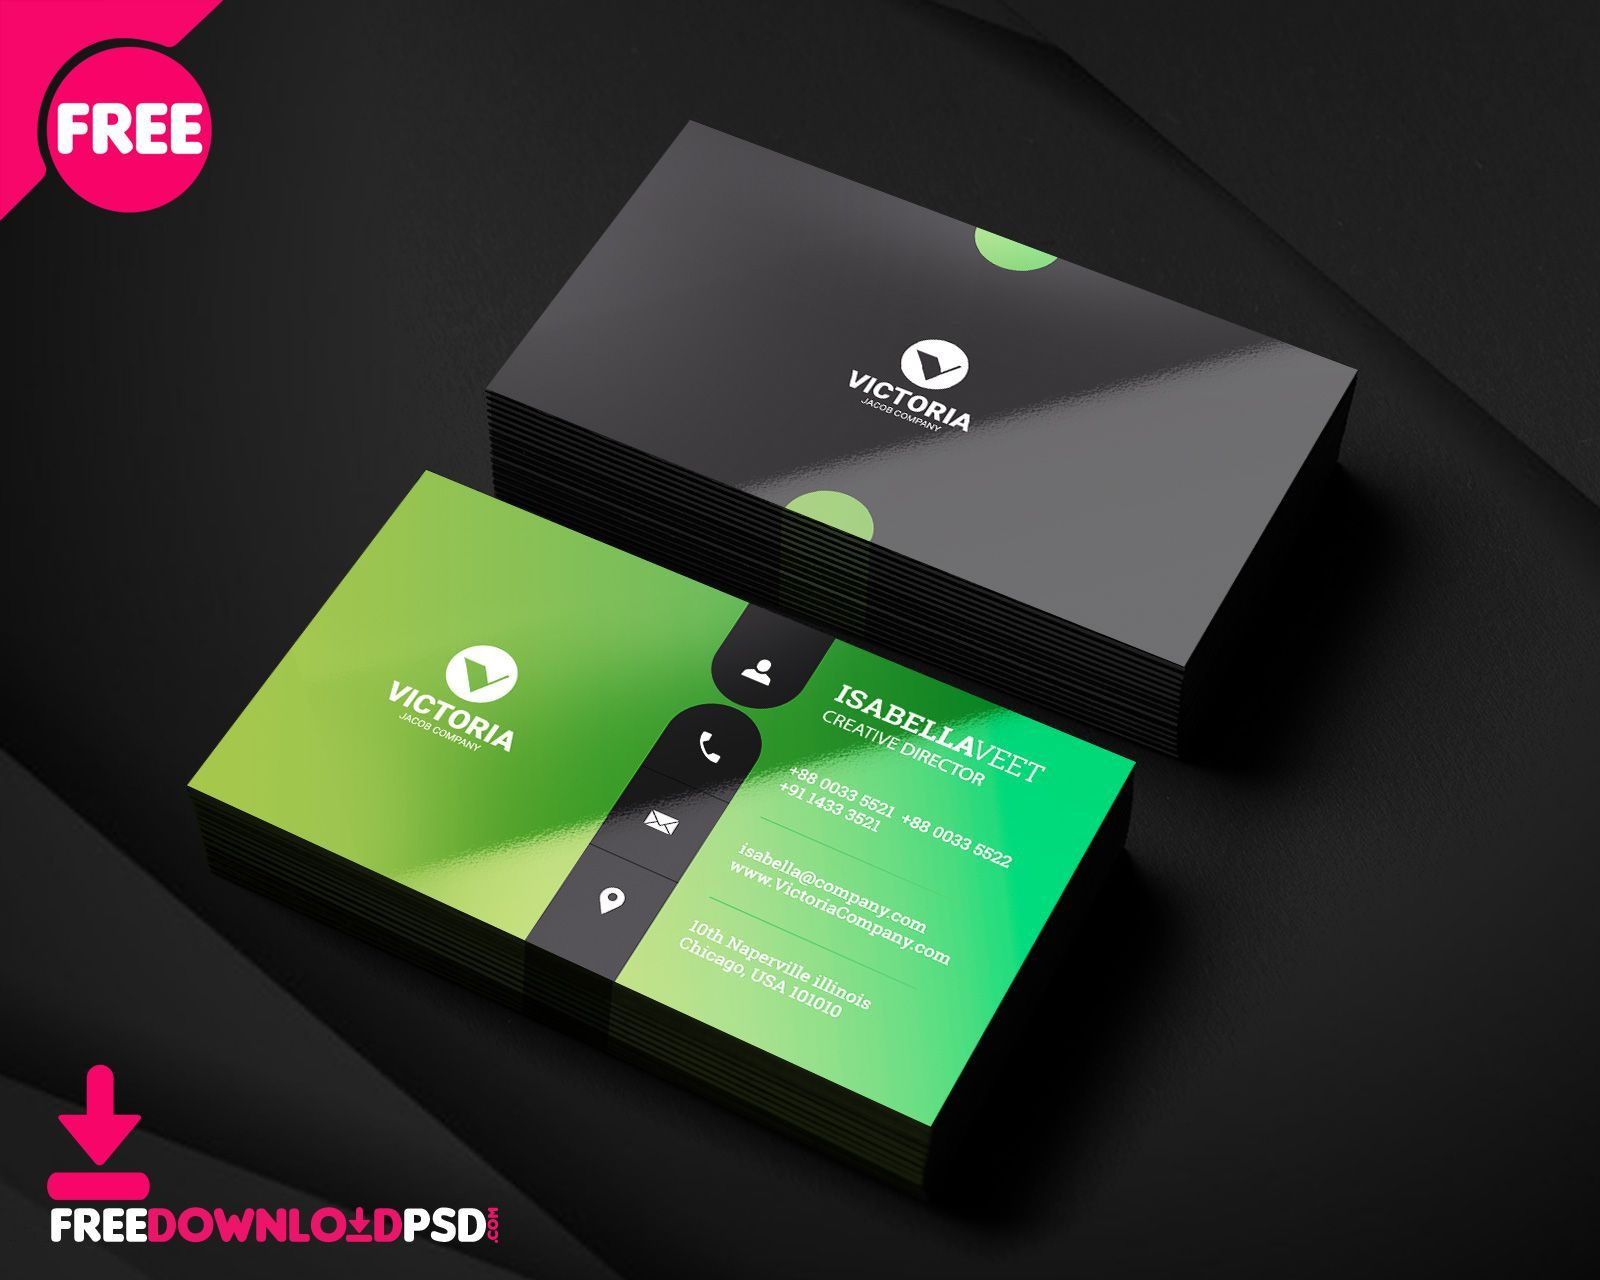 000 Unusual Simple Busines Card Design Template Free High Resolution  Minimalist Psd Visiting File DownloadFull